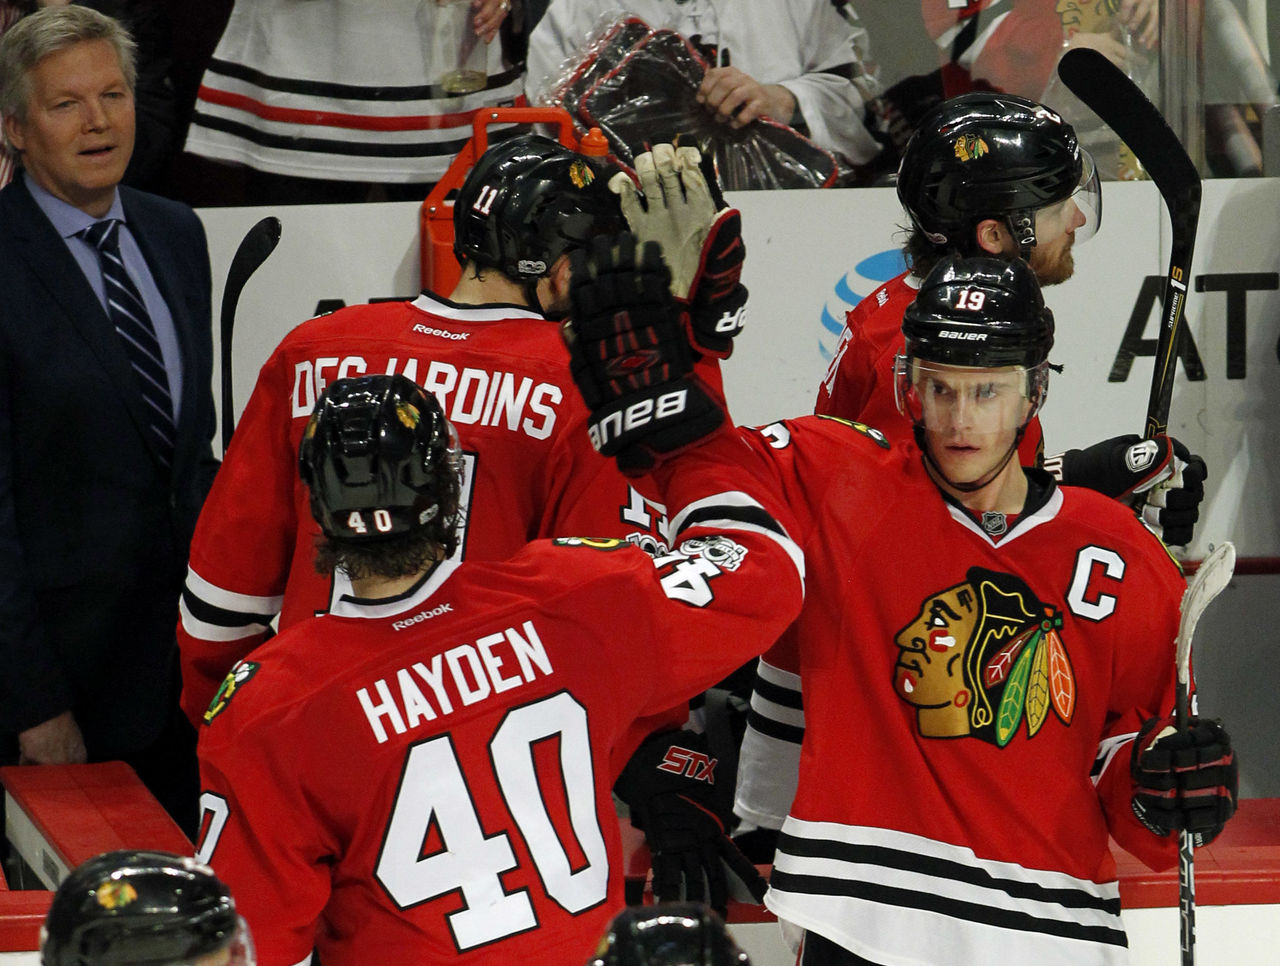 Cropped 2017 03 20t021752z 1235350936 nocid rtrmadp 3 nhl colorado avalanche at chicago blackhawks